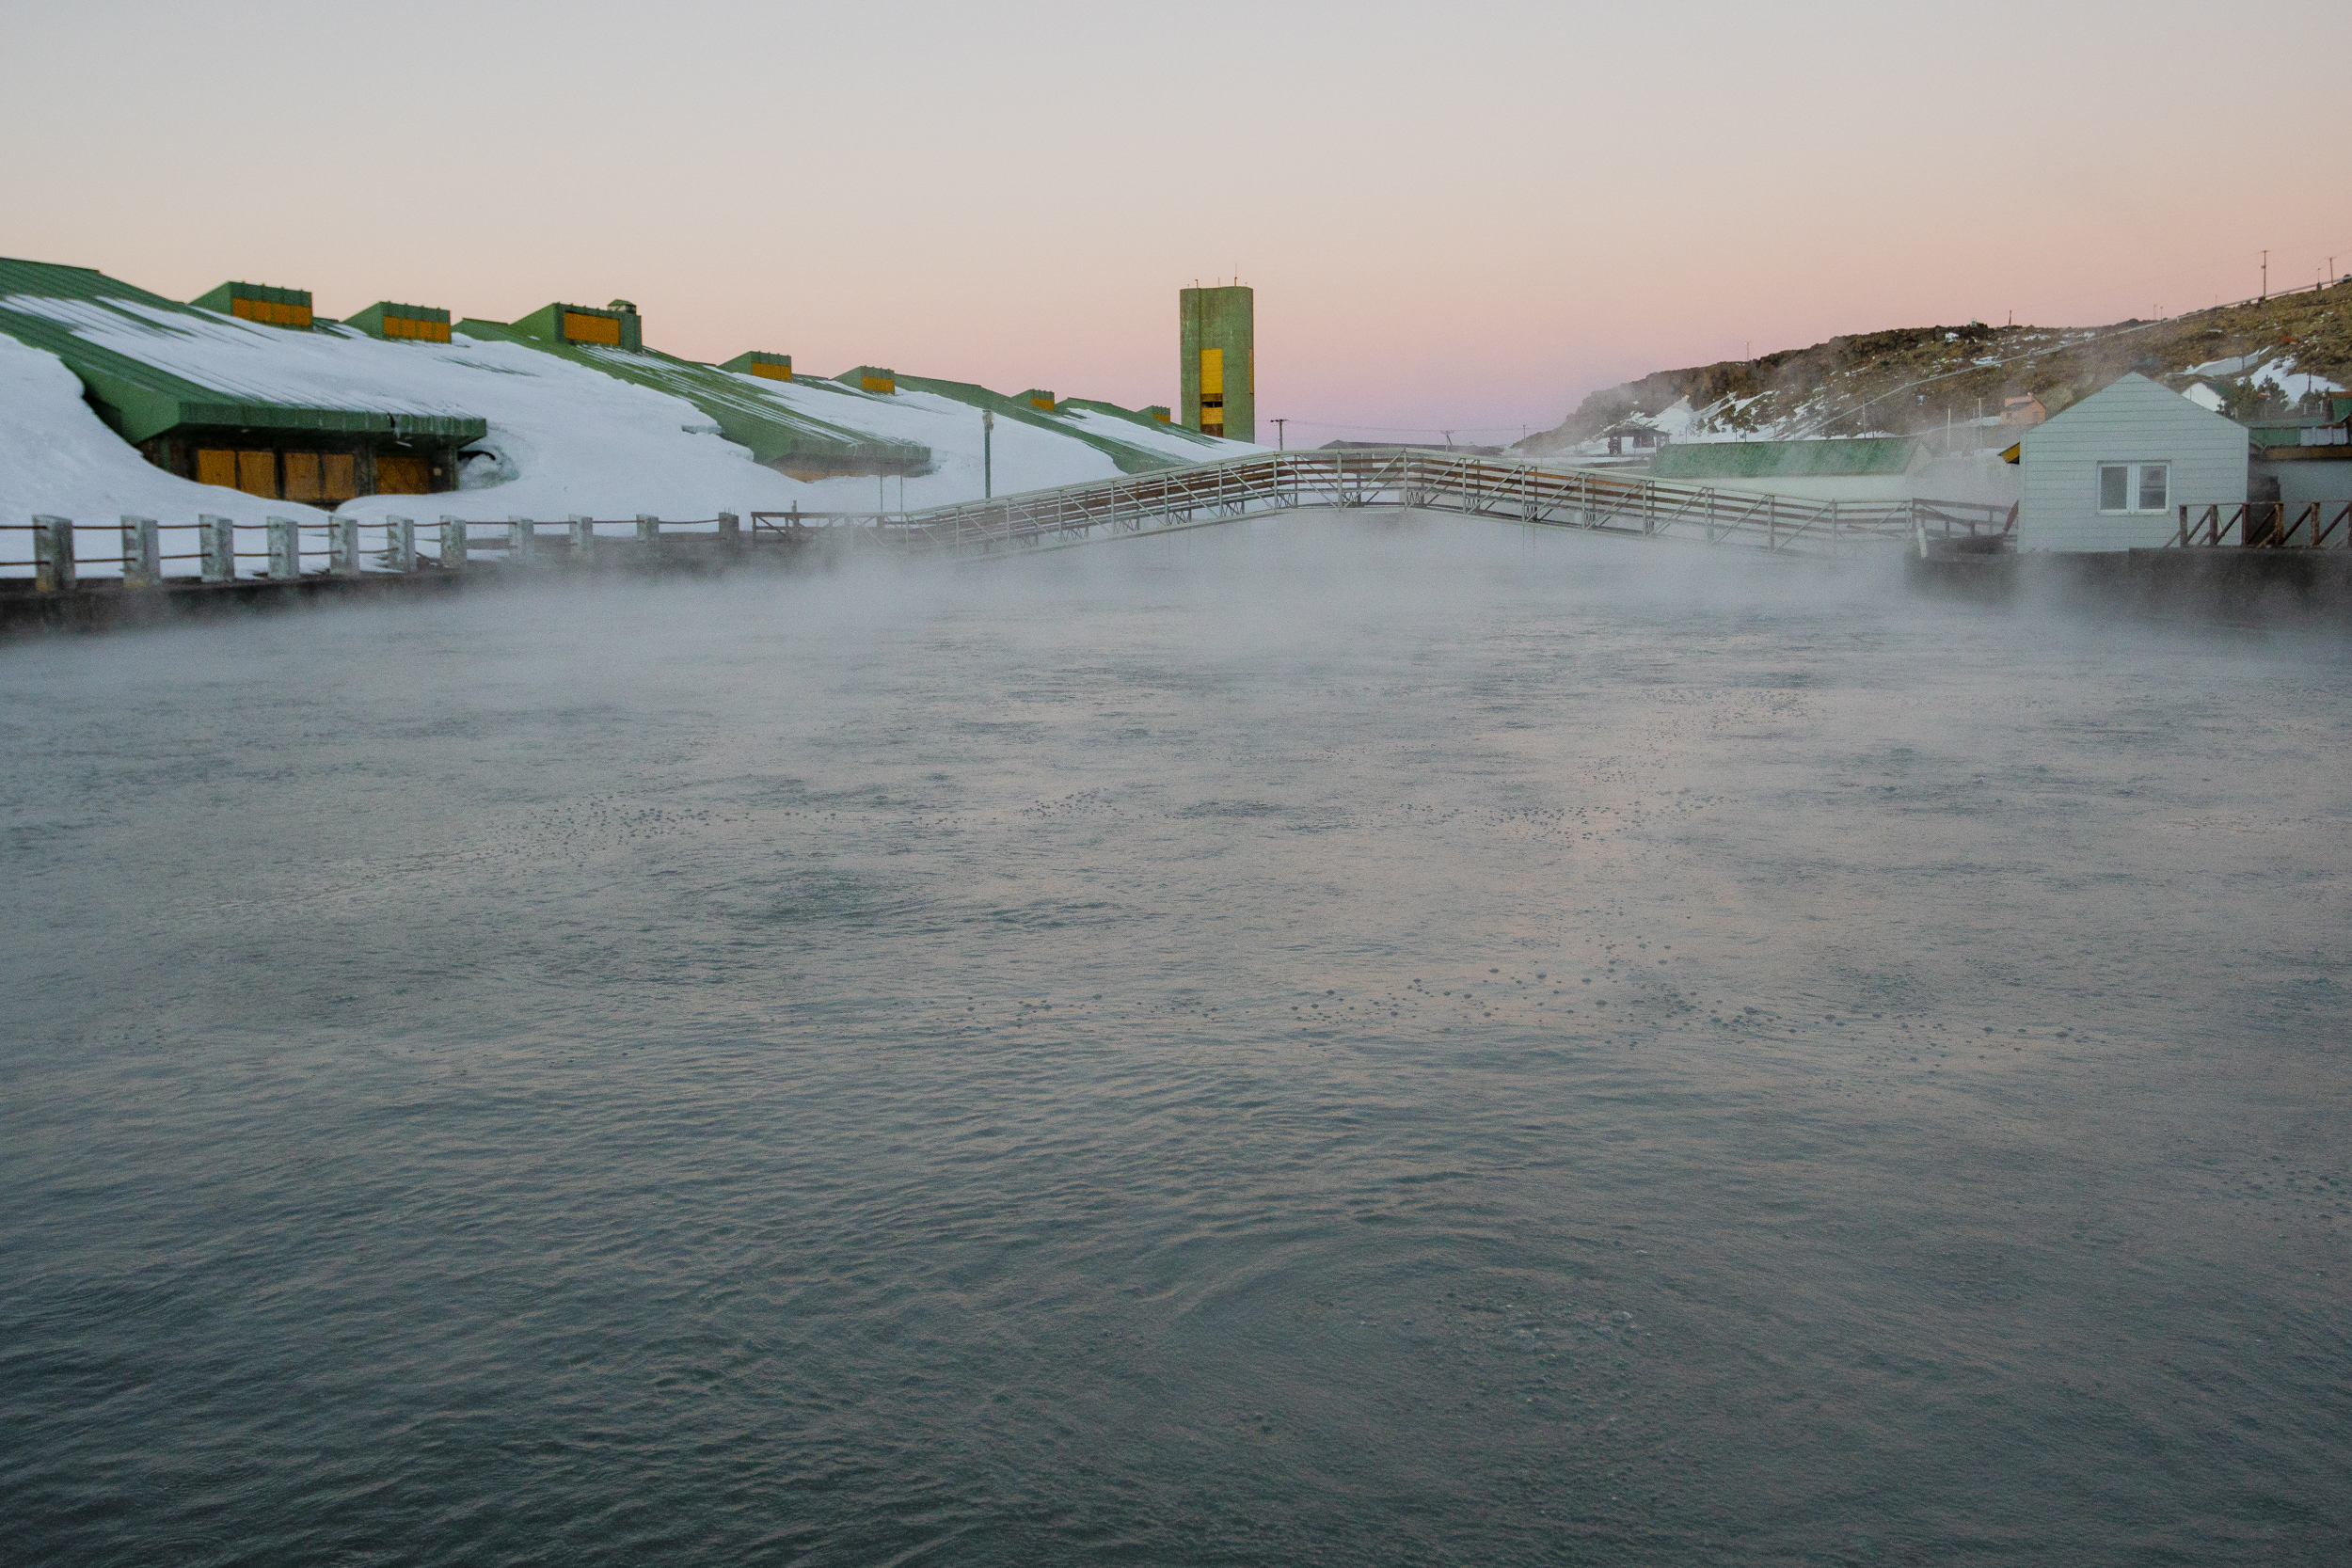 Steam rises off the largest hot spring in Copahue.